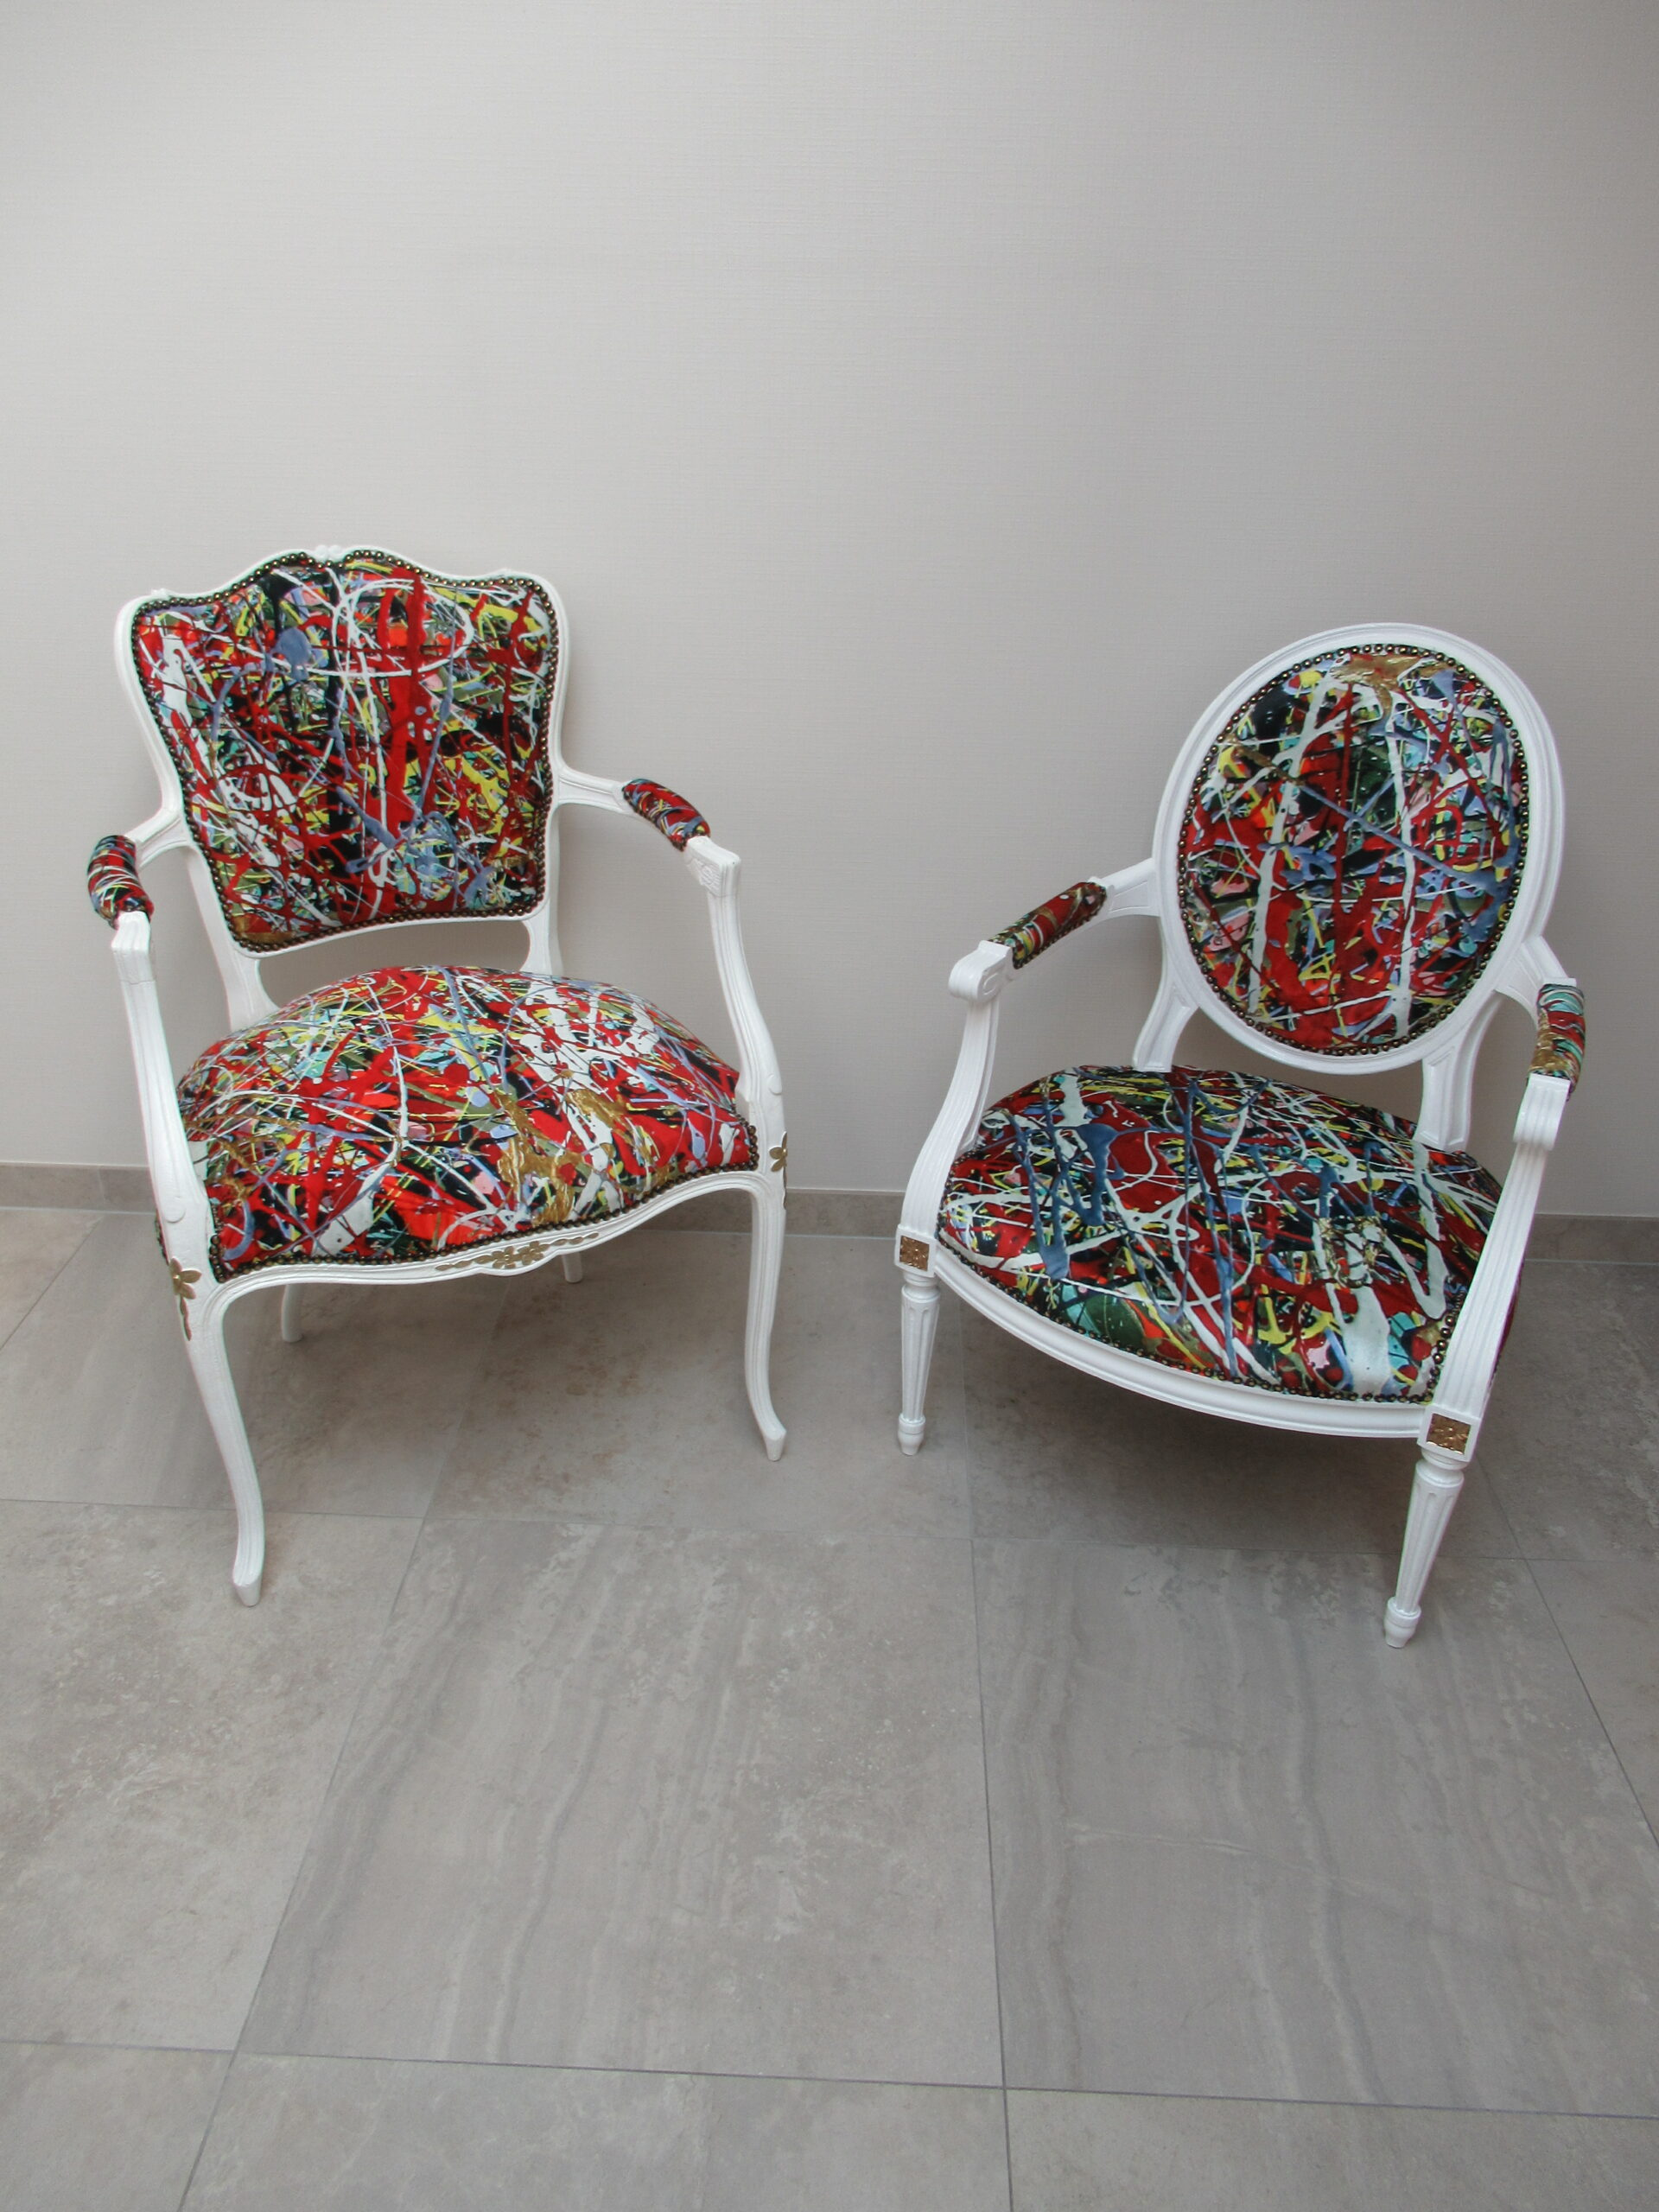 Art Chair nr 2 and nr 7